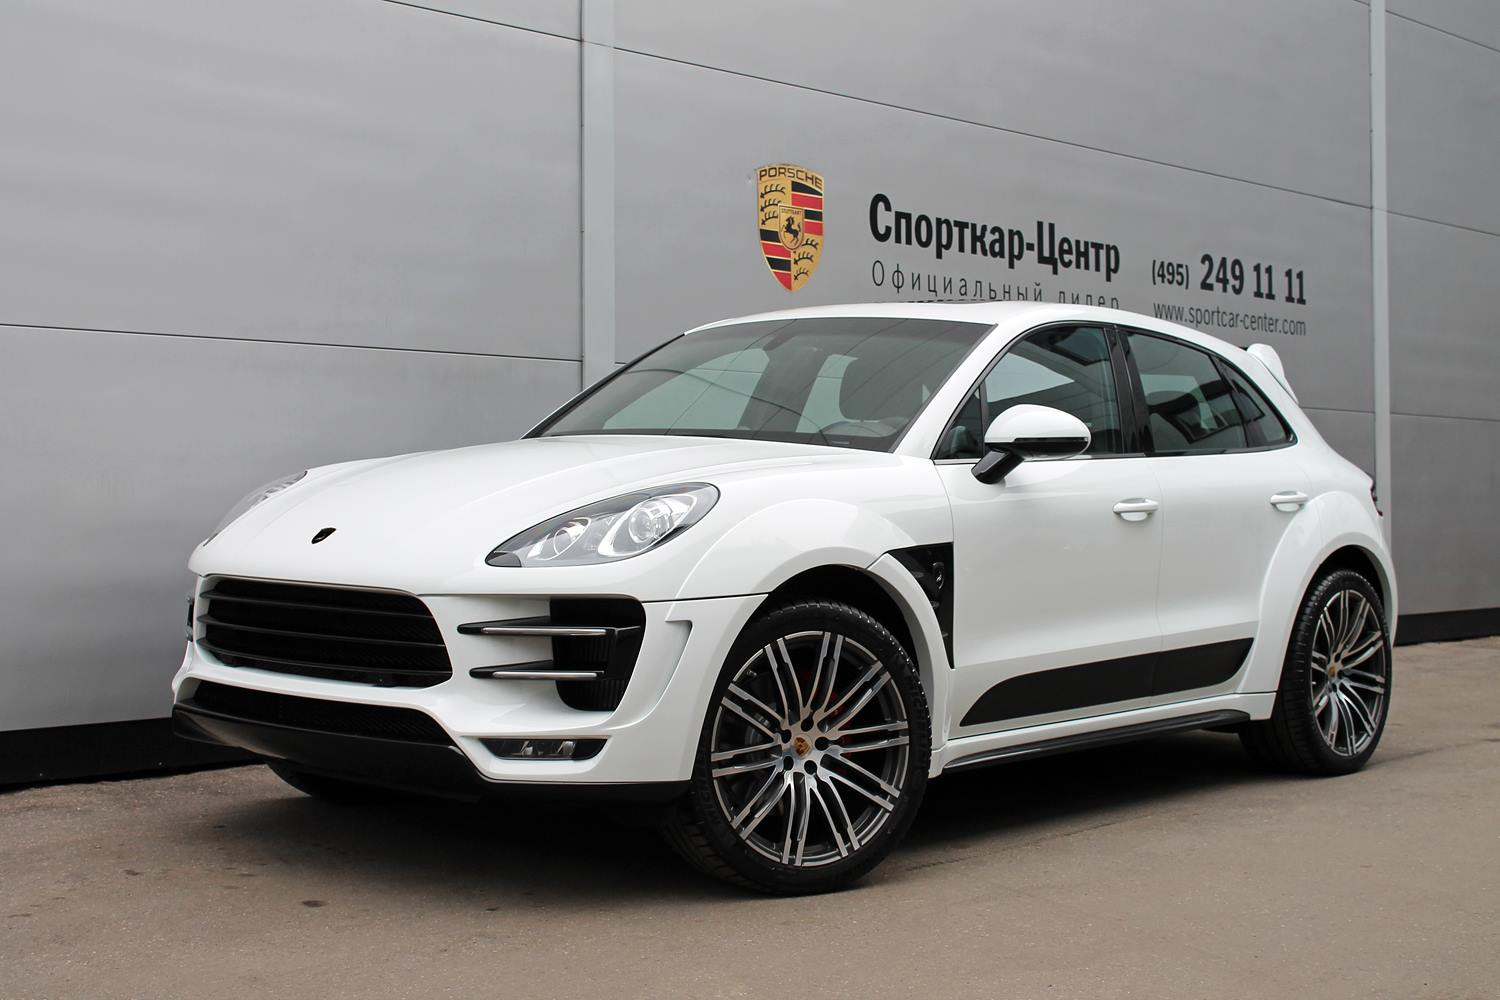 Universe Auto Sales >> White Porsche Macan Ursa by Topcar for Sale - autoevolution